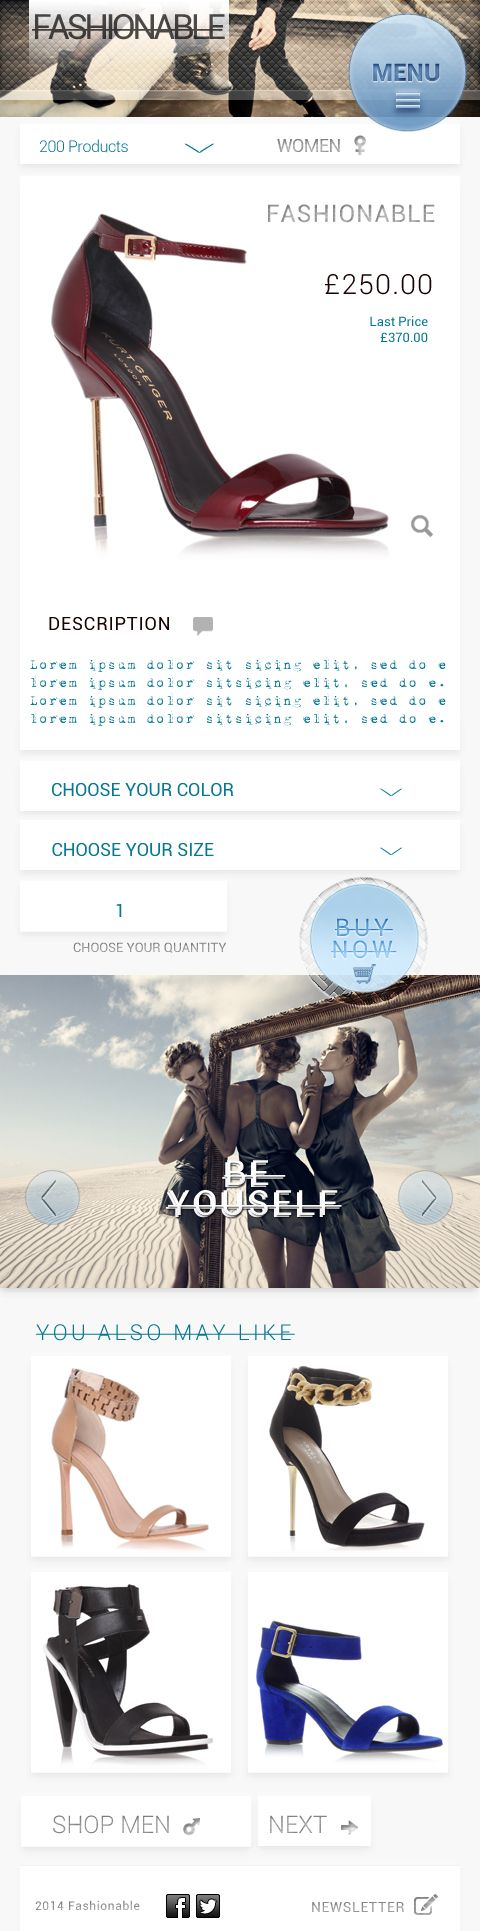 Fashionable Mobile Product Page